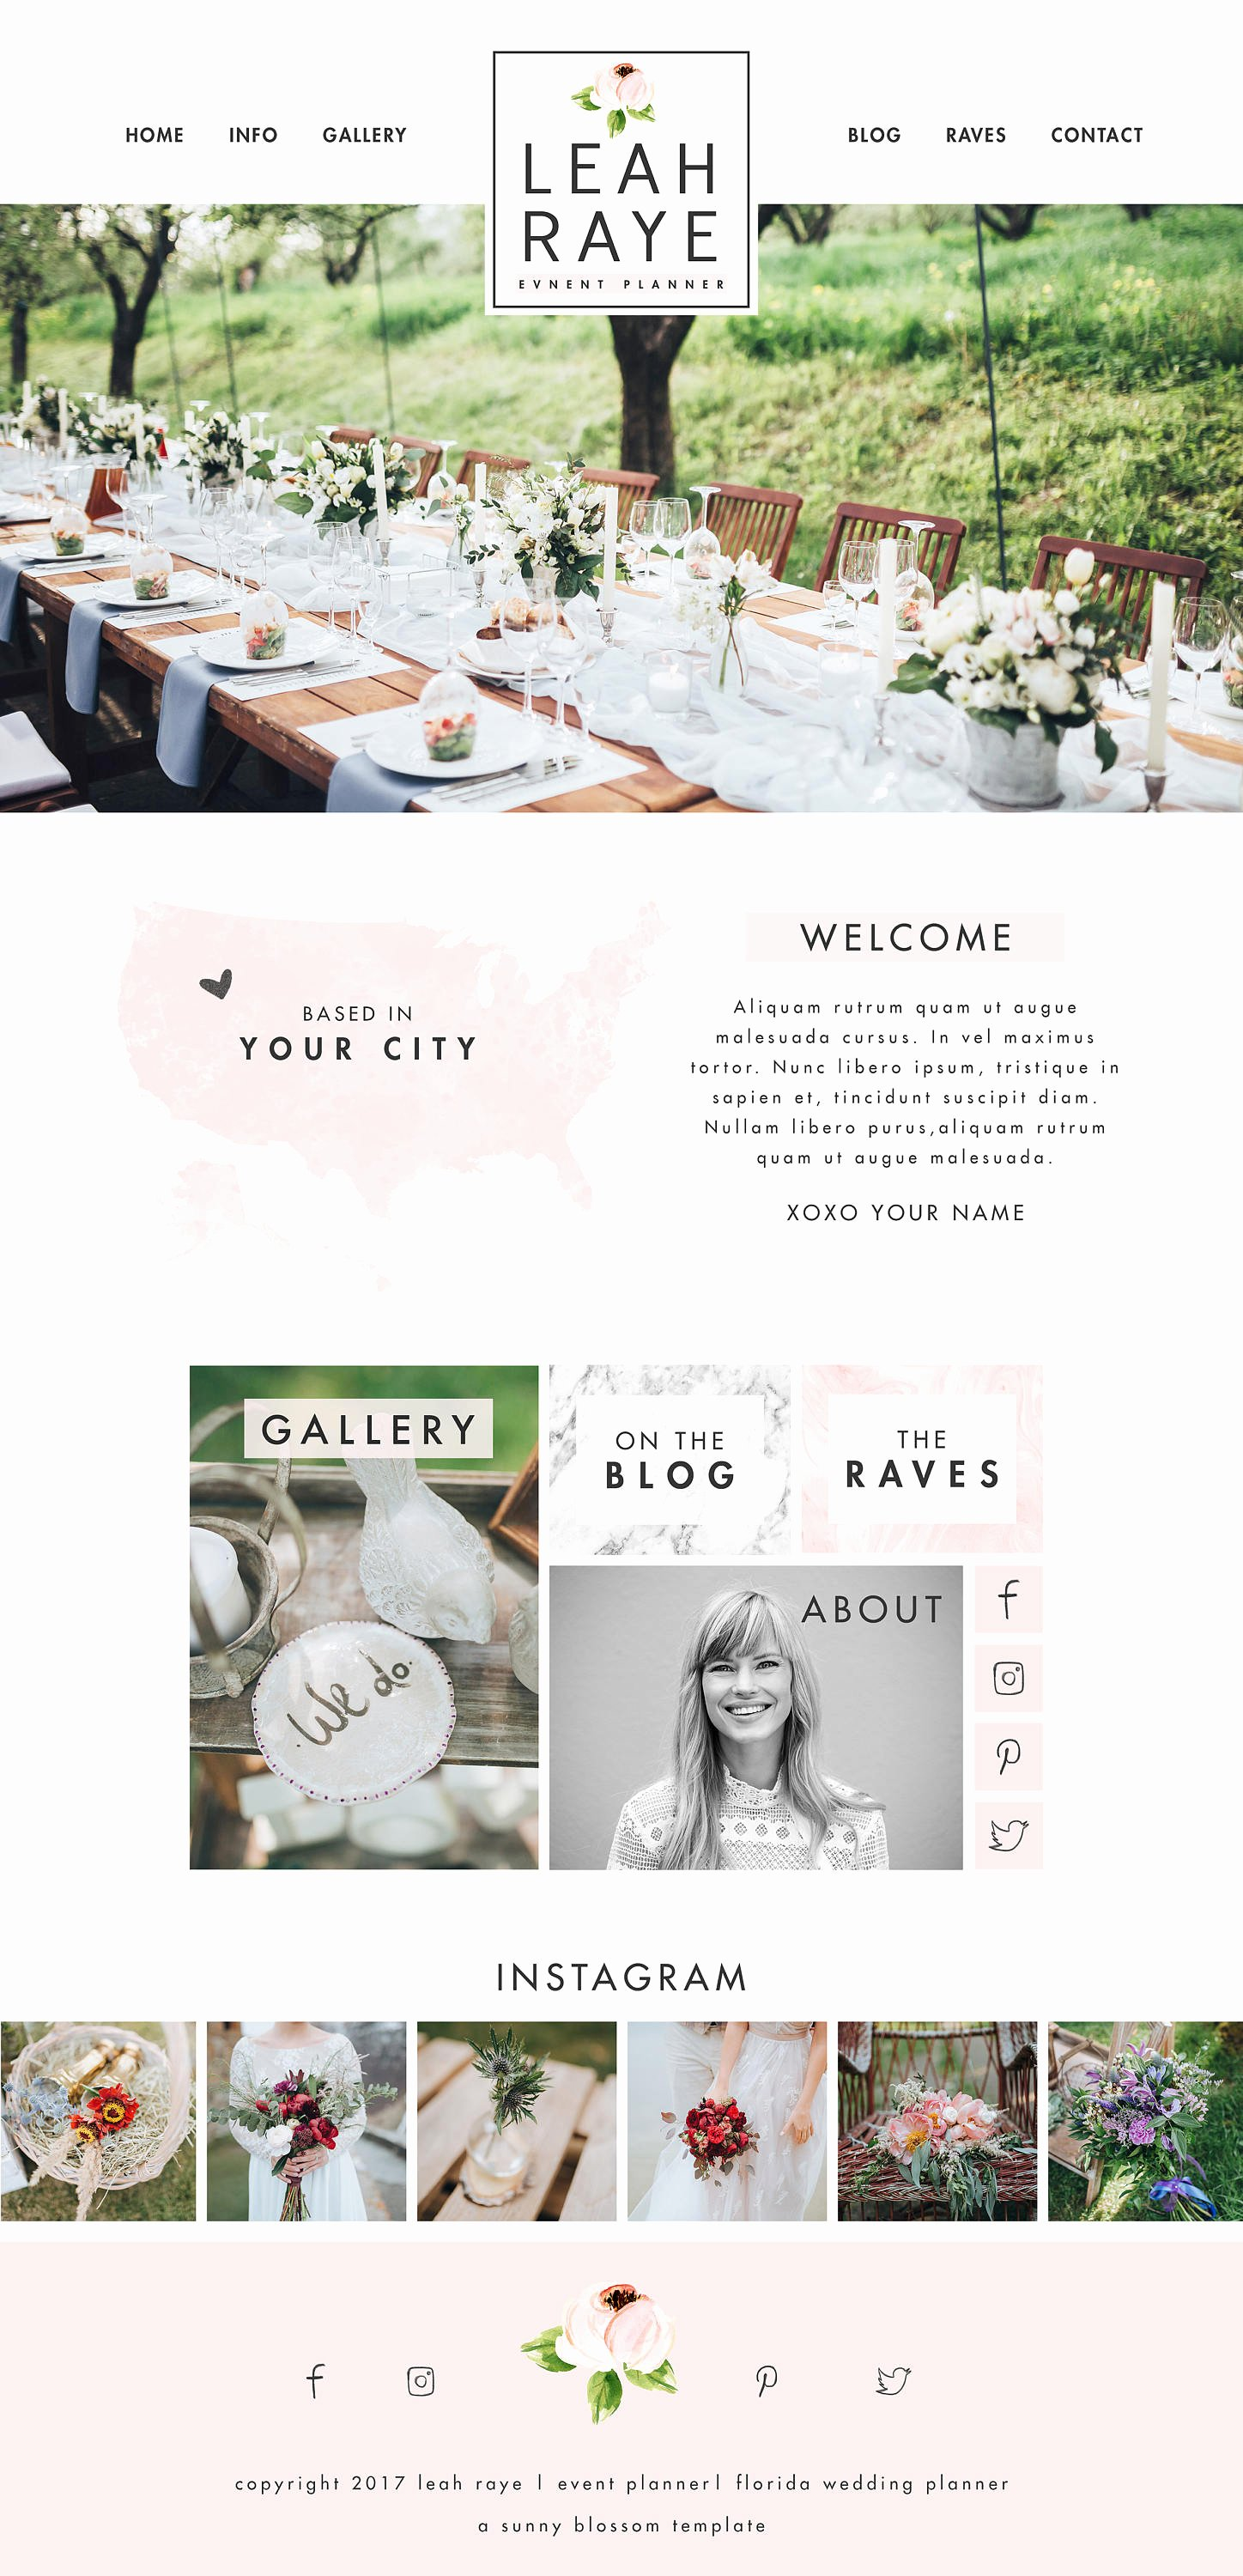 Wedding Planner Website Template Luxury Wix Website Design Website Template Wedding Planner Website